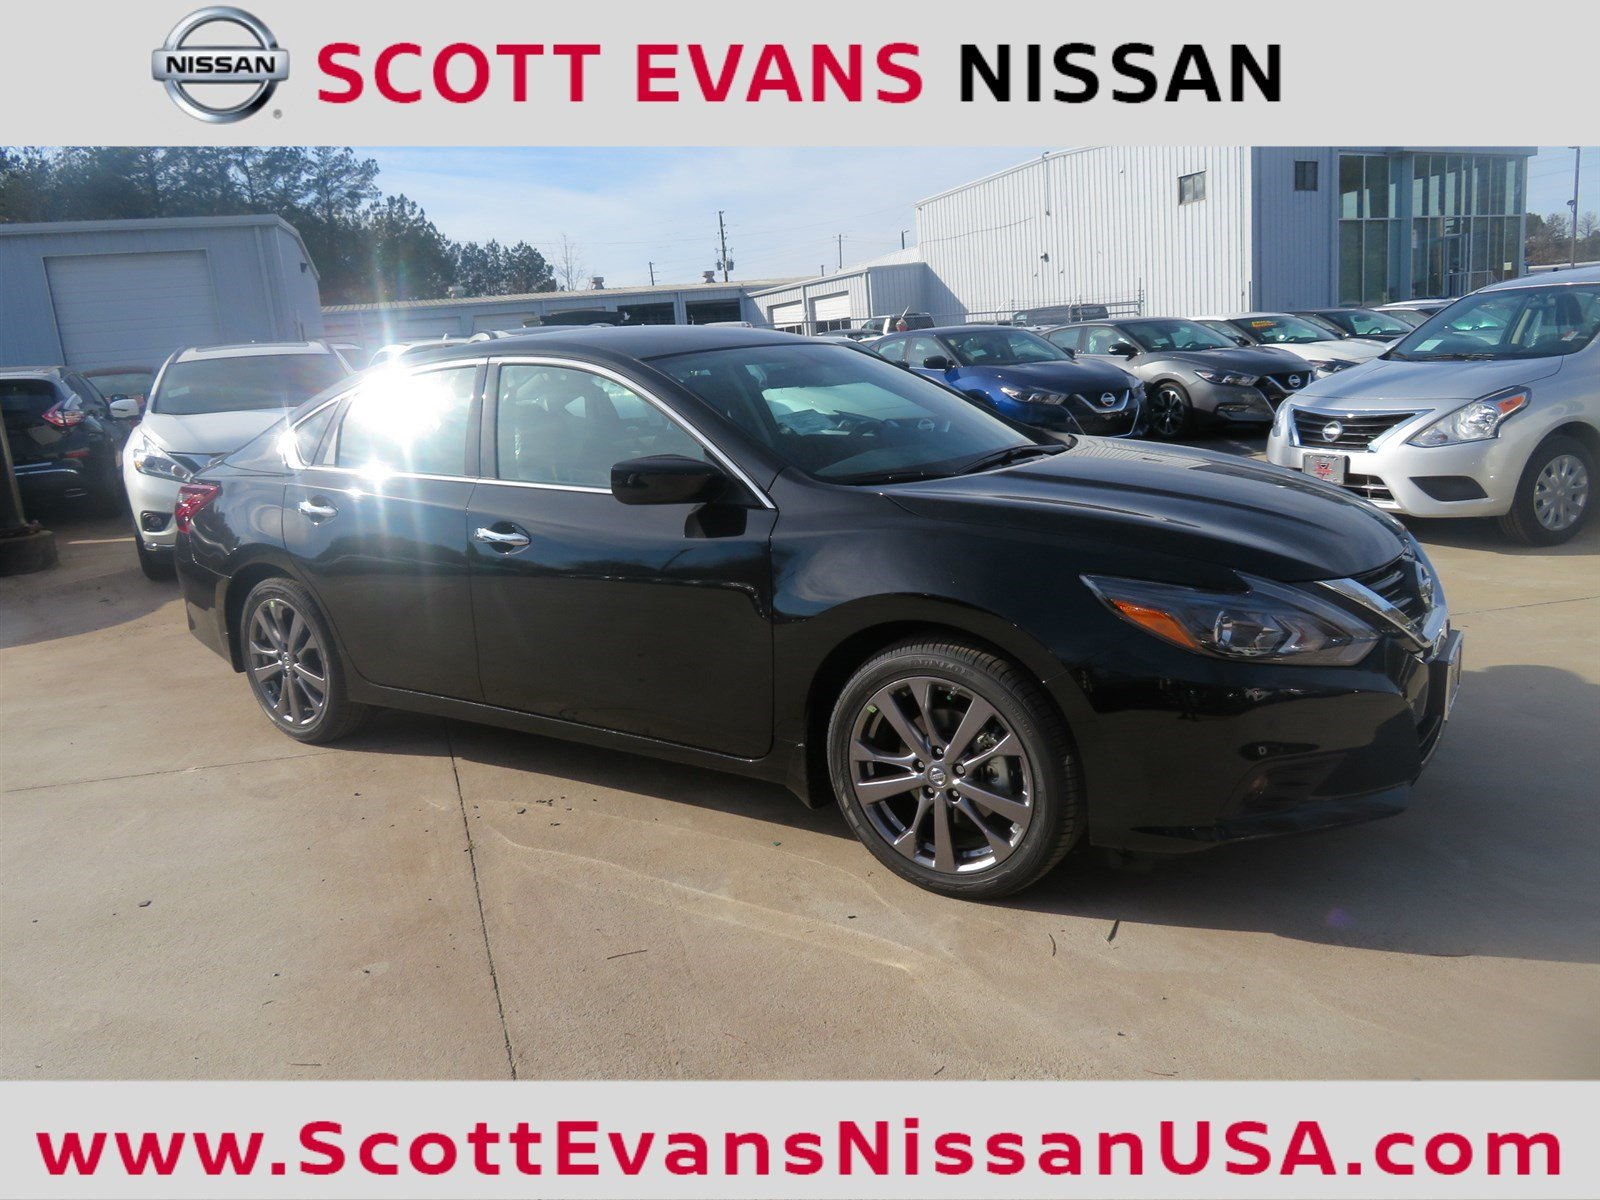 New 2018 Nissan Altima 2 5 SR Special Edition 4dr Car in Carrollton